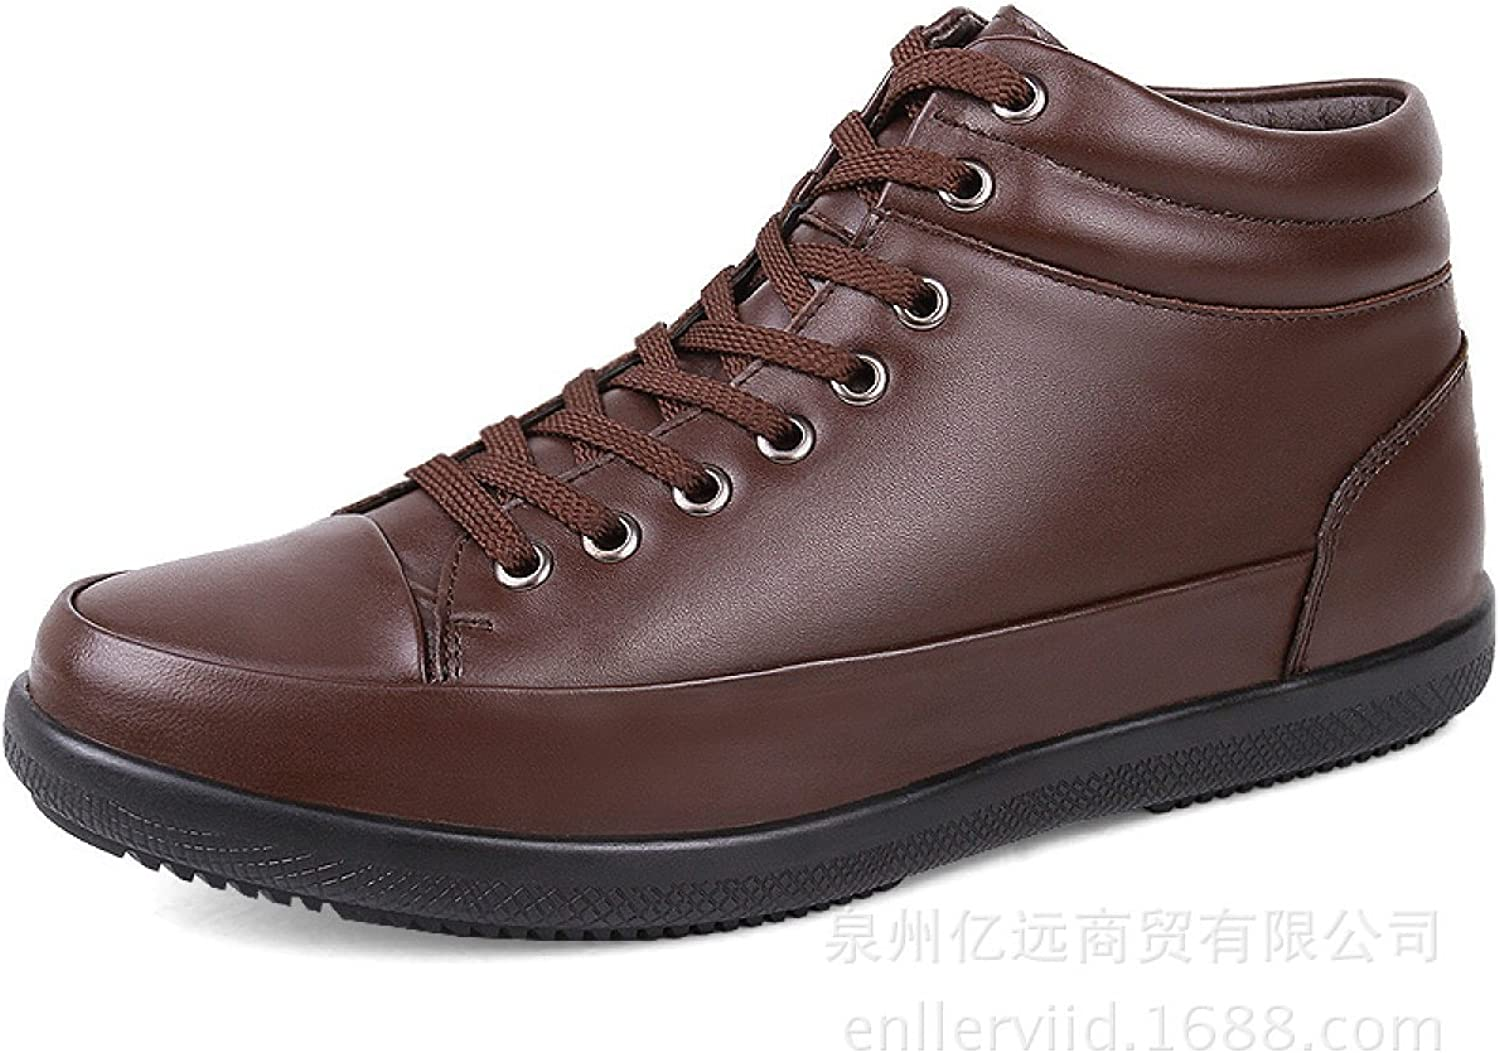 Leather High To Help Men's Boots Plus Cashmere Warm Cotton Boots shoes